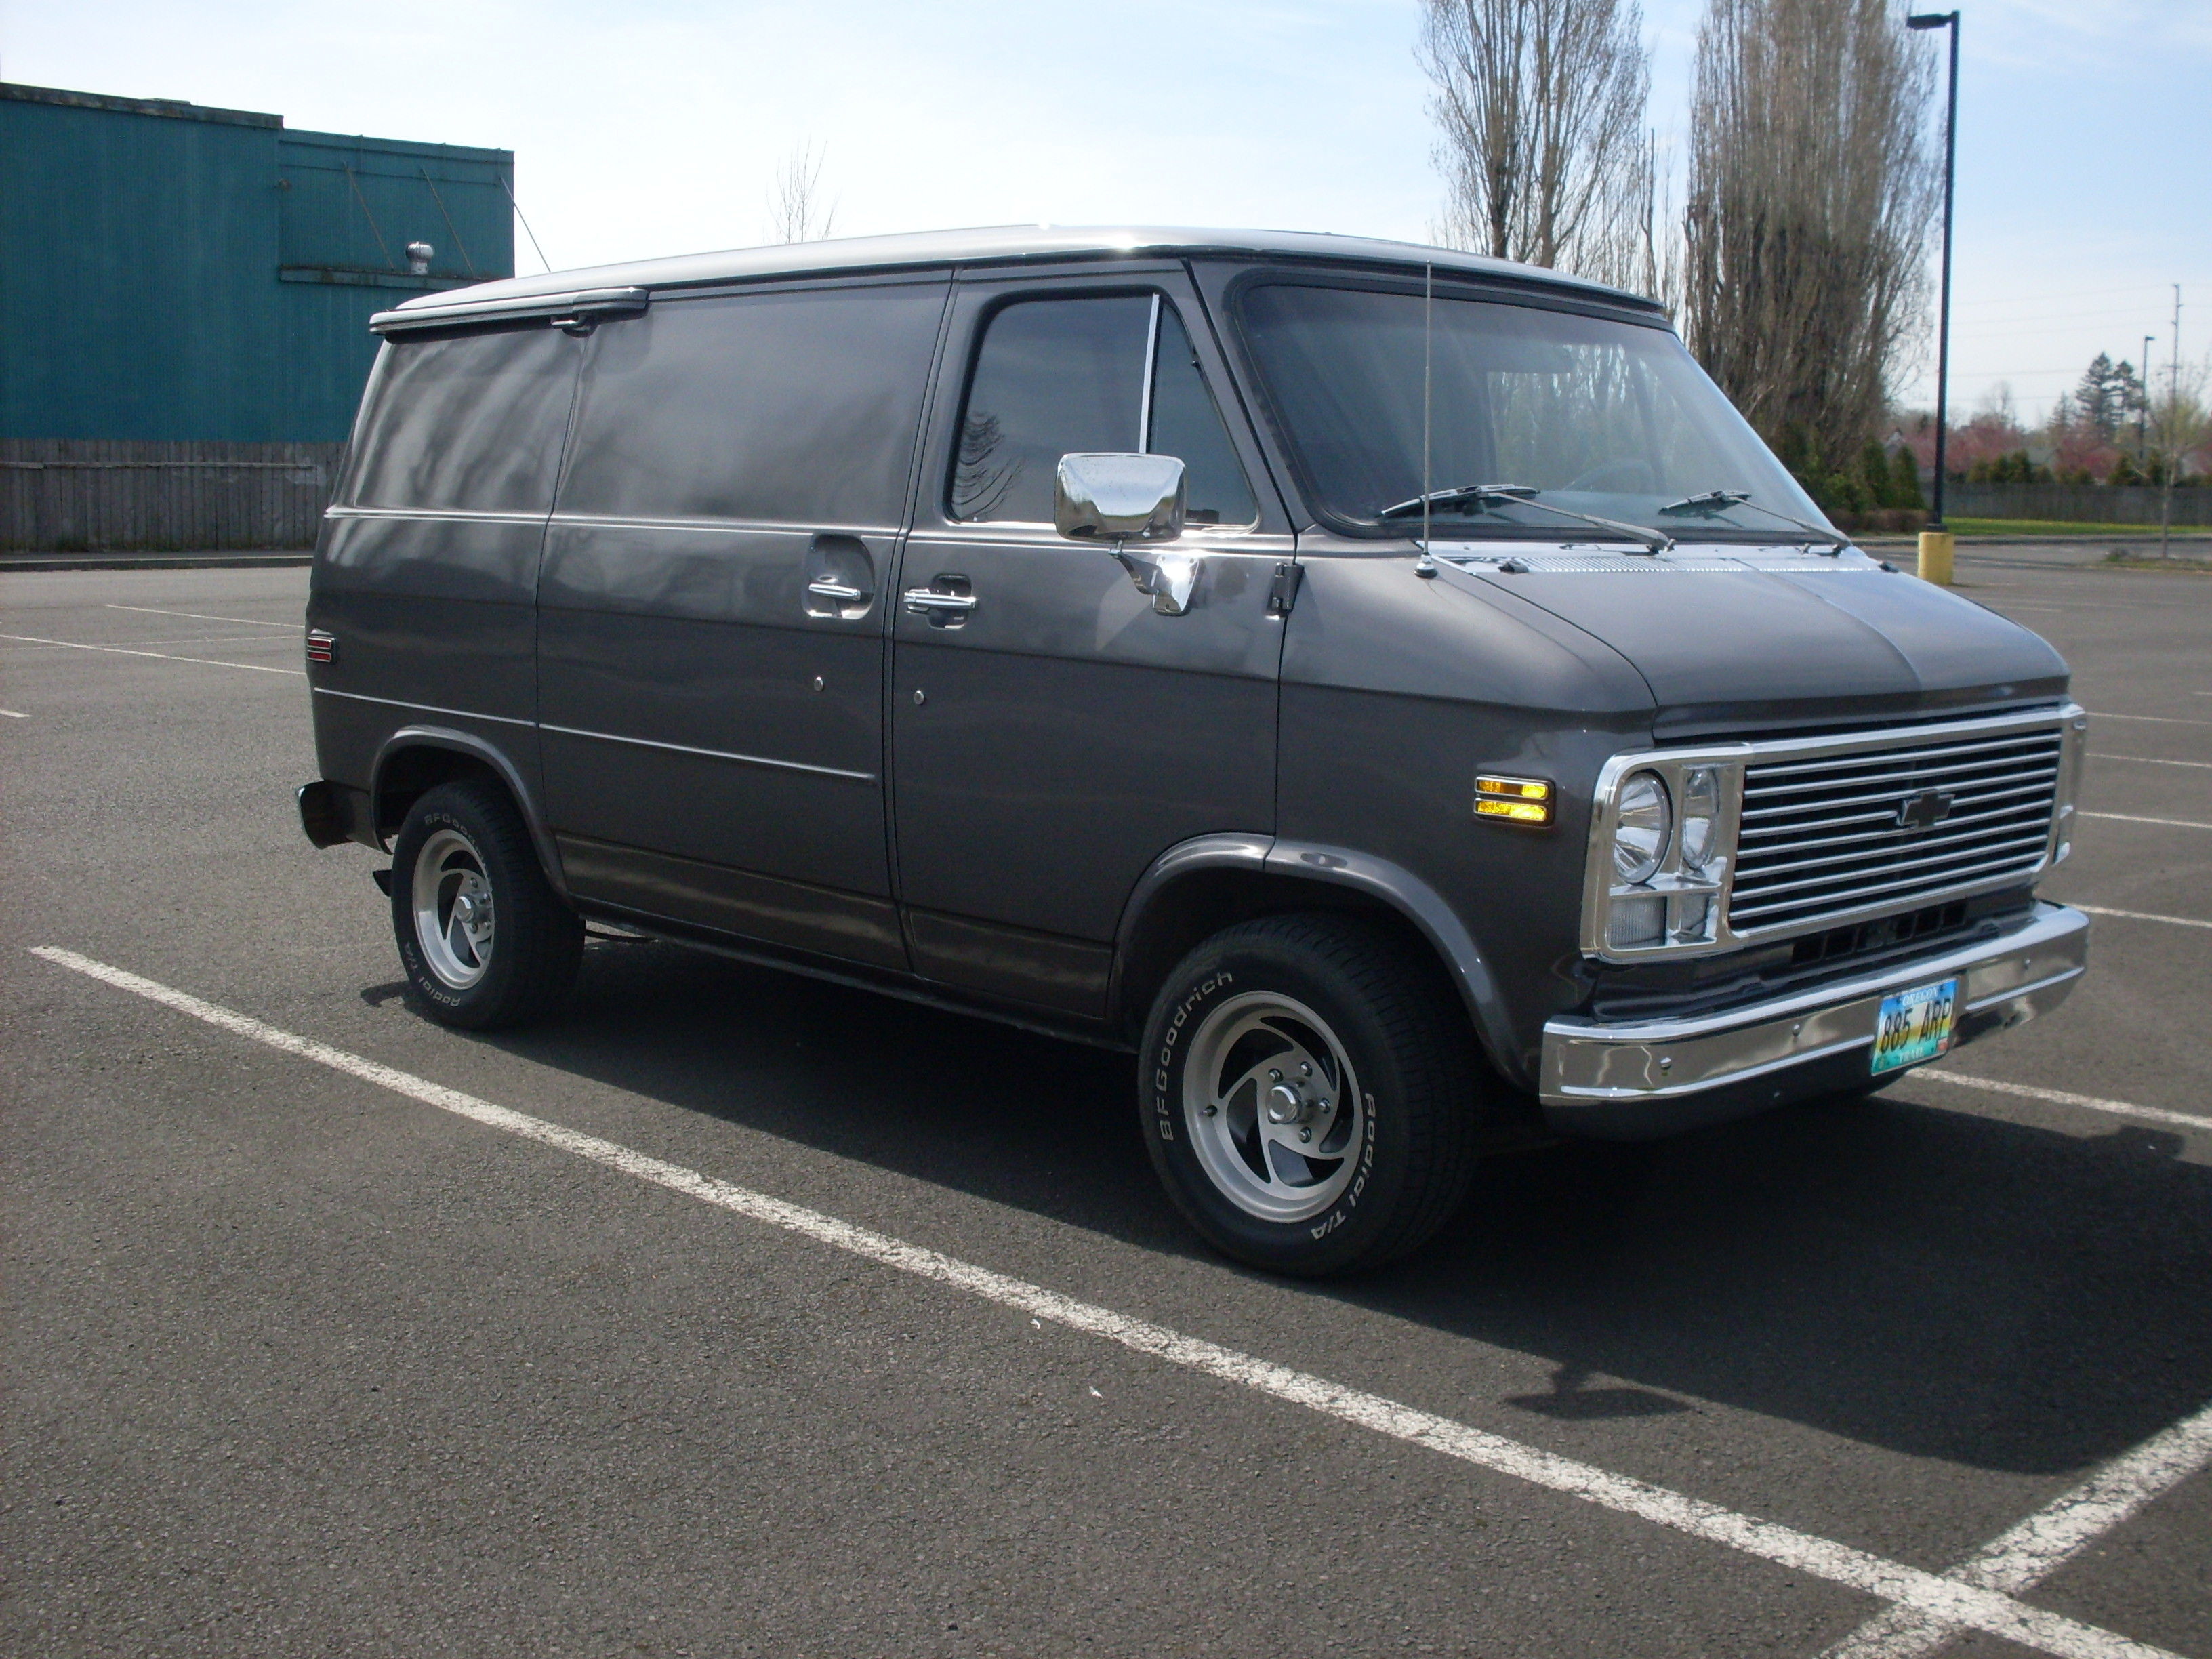 Neverhadabadday 1978 Chevrolet Van Specs Photos